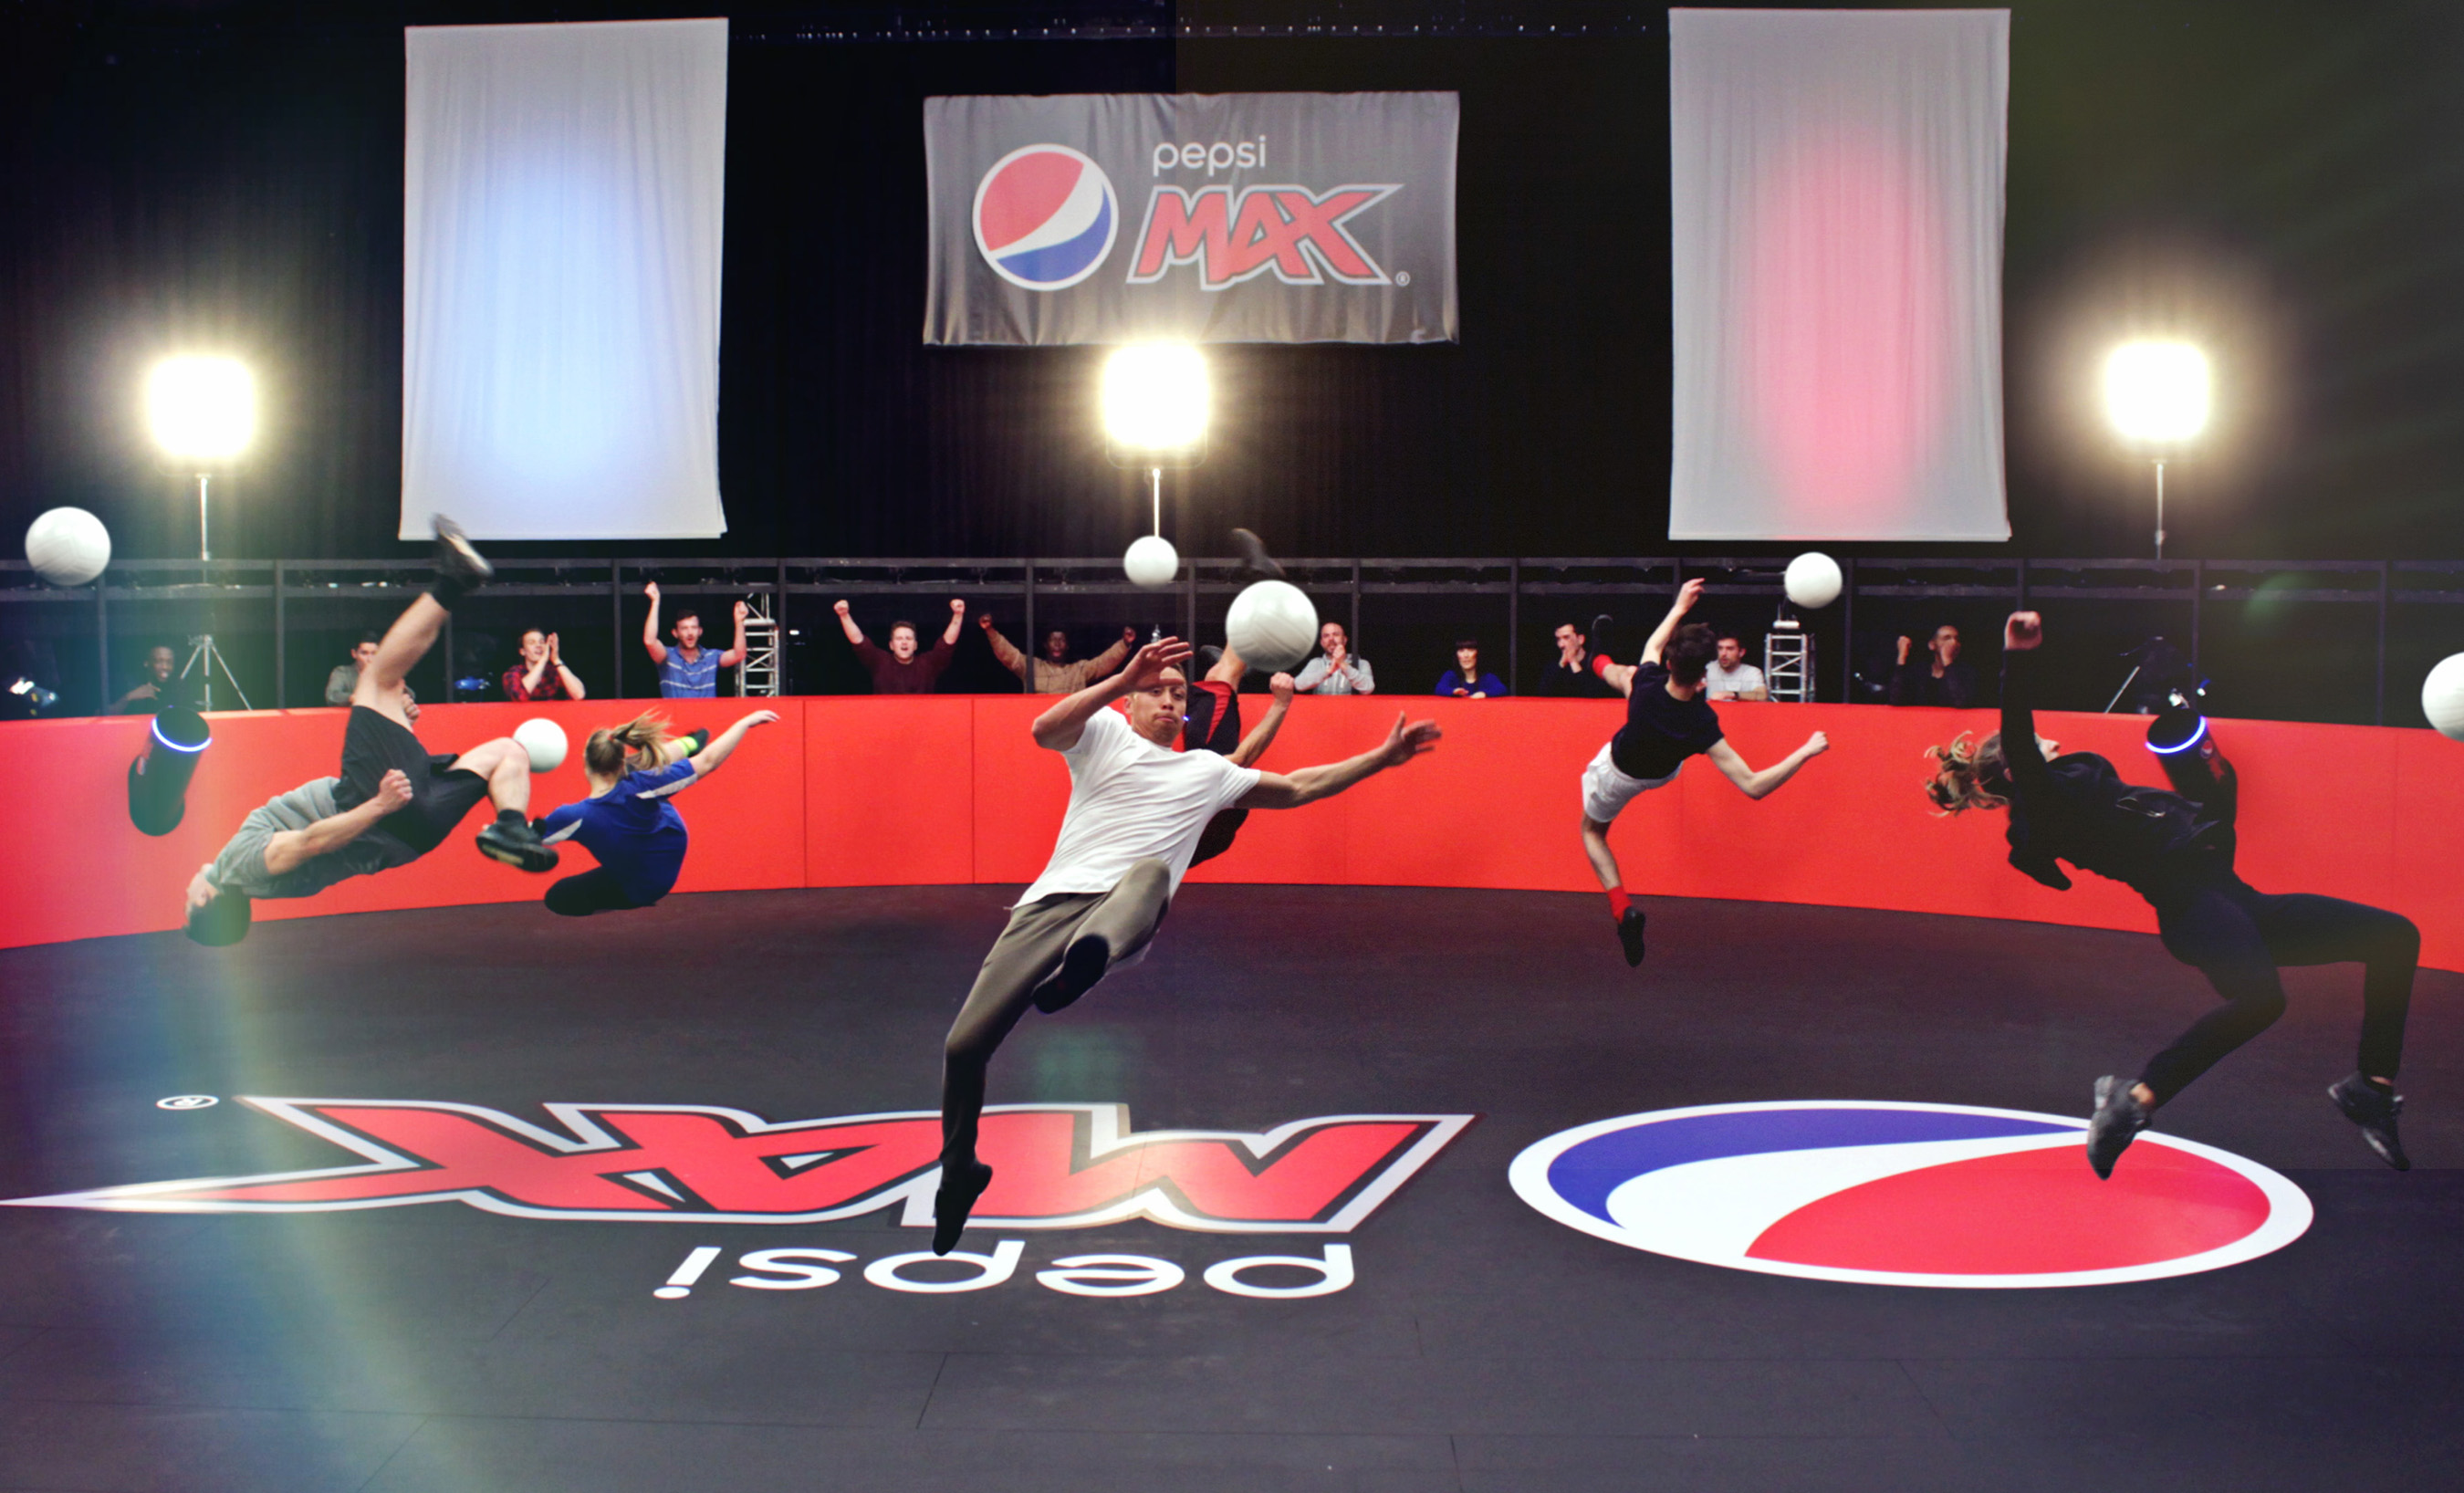 athletes-launch-the-pepsi-max-'volley-360'-14-HR